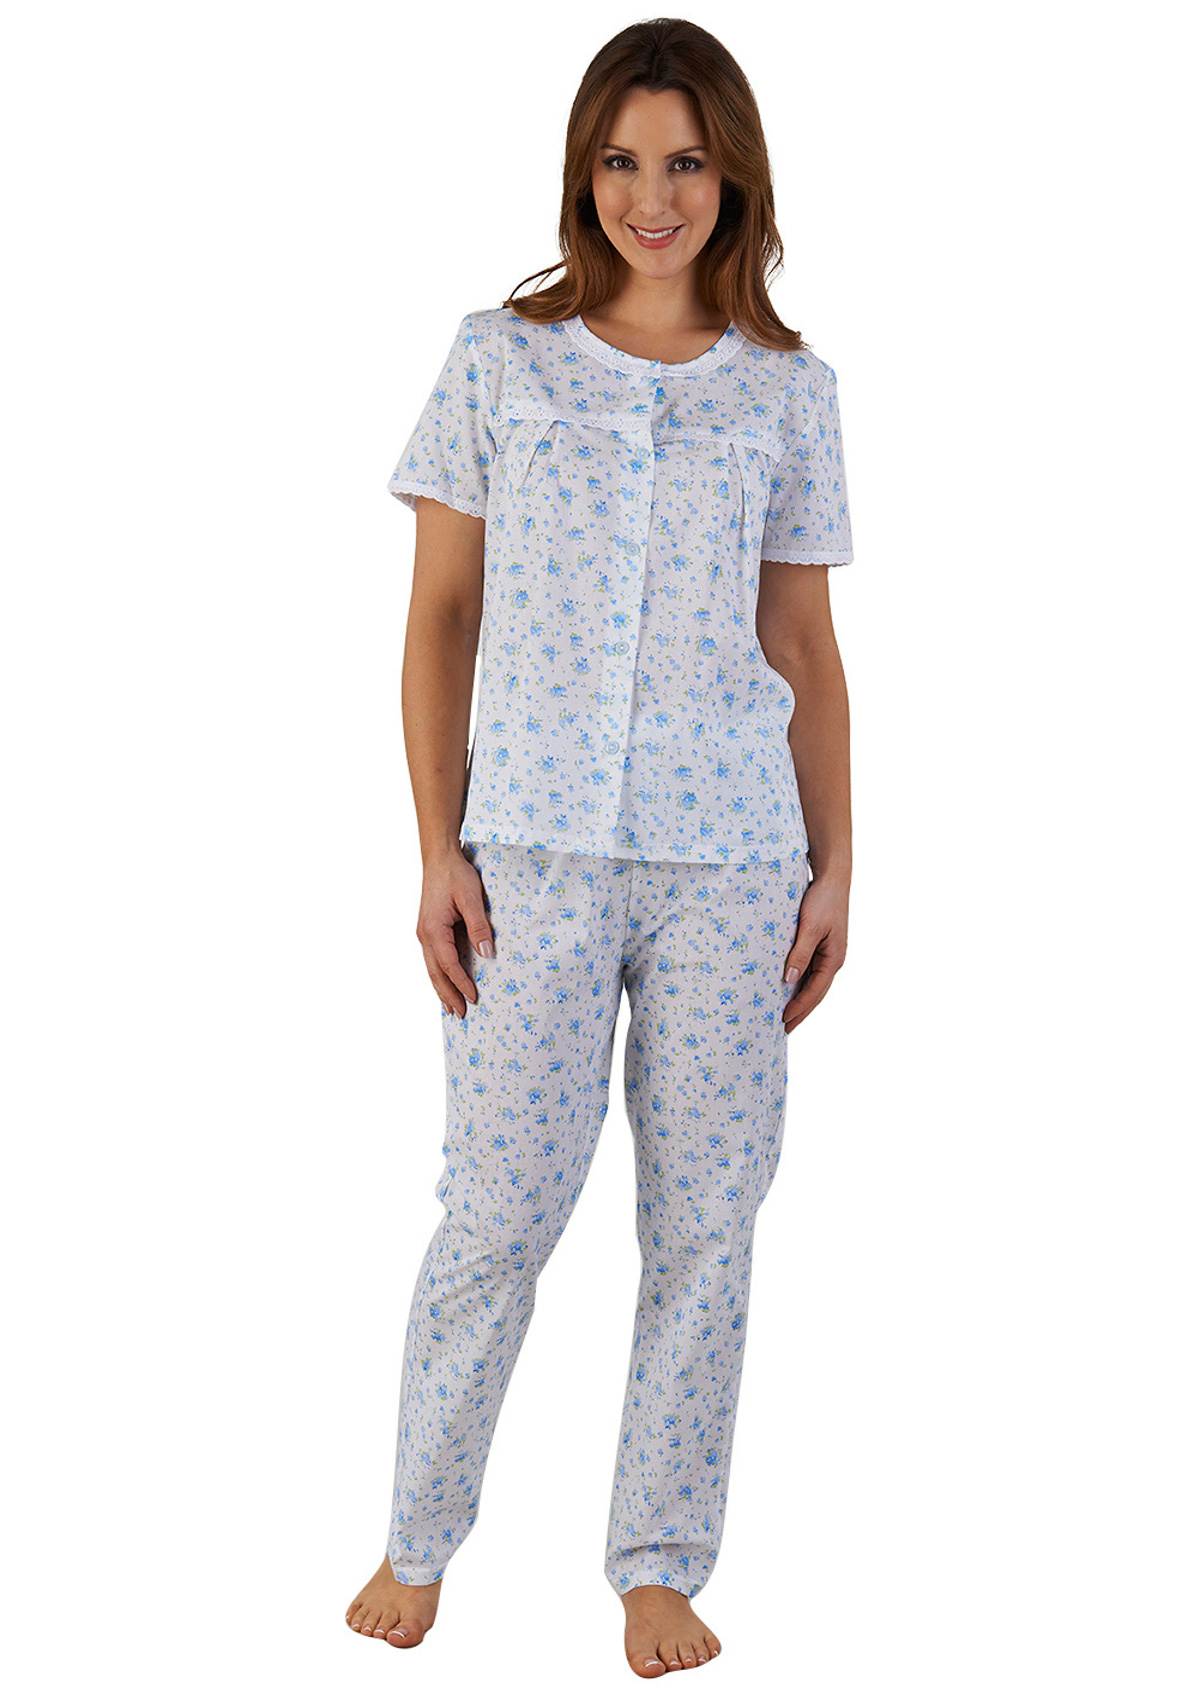 Browse our women's pajamas to find endless sleepwear styles. Pick sexy pjs in satin, cotton and more. Shop now at Victoria's Secret.